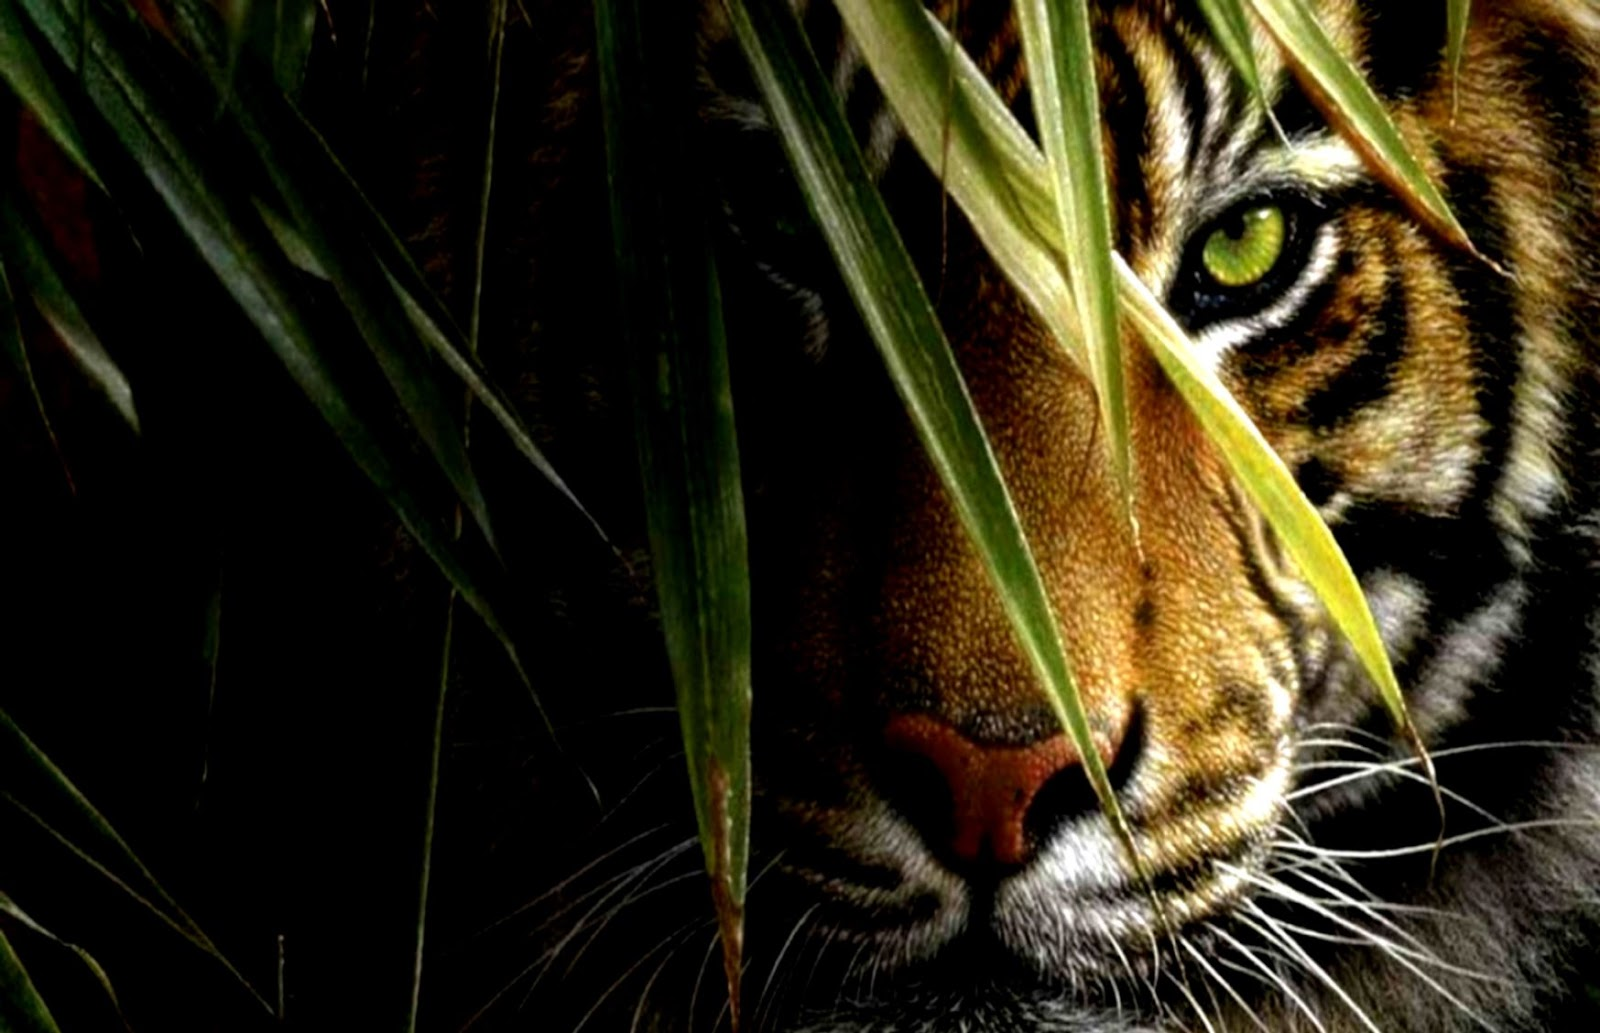 Tiger Wallpaper Hd For Desktop Wallpapers Link